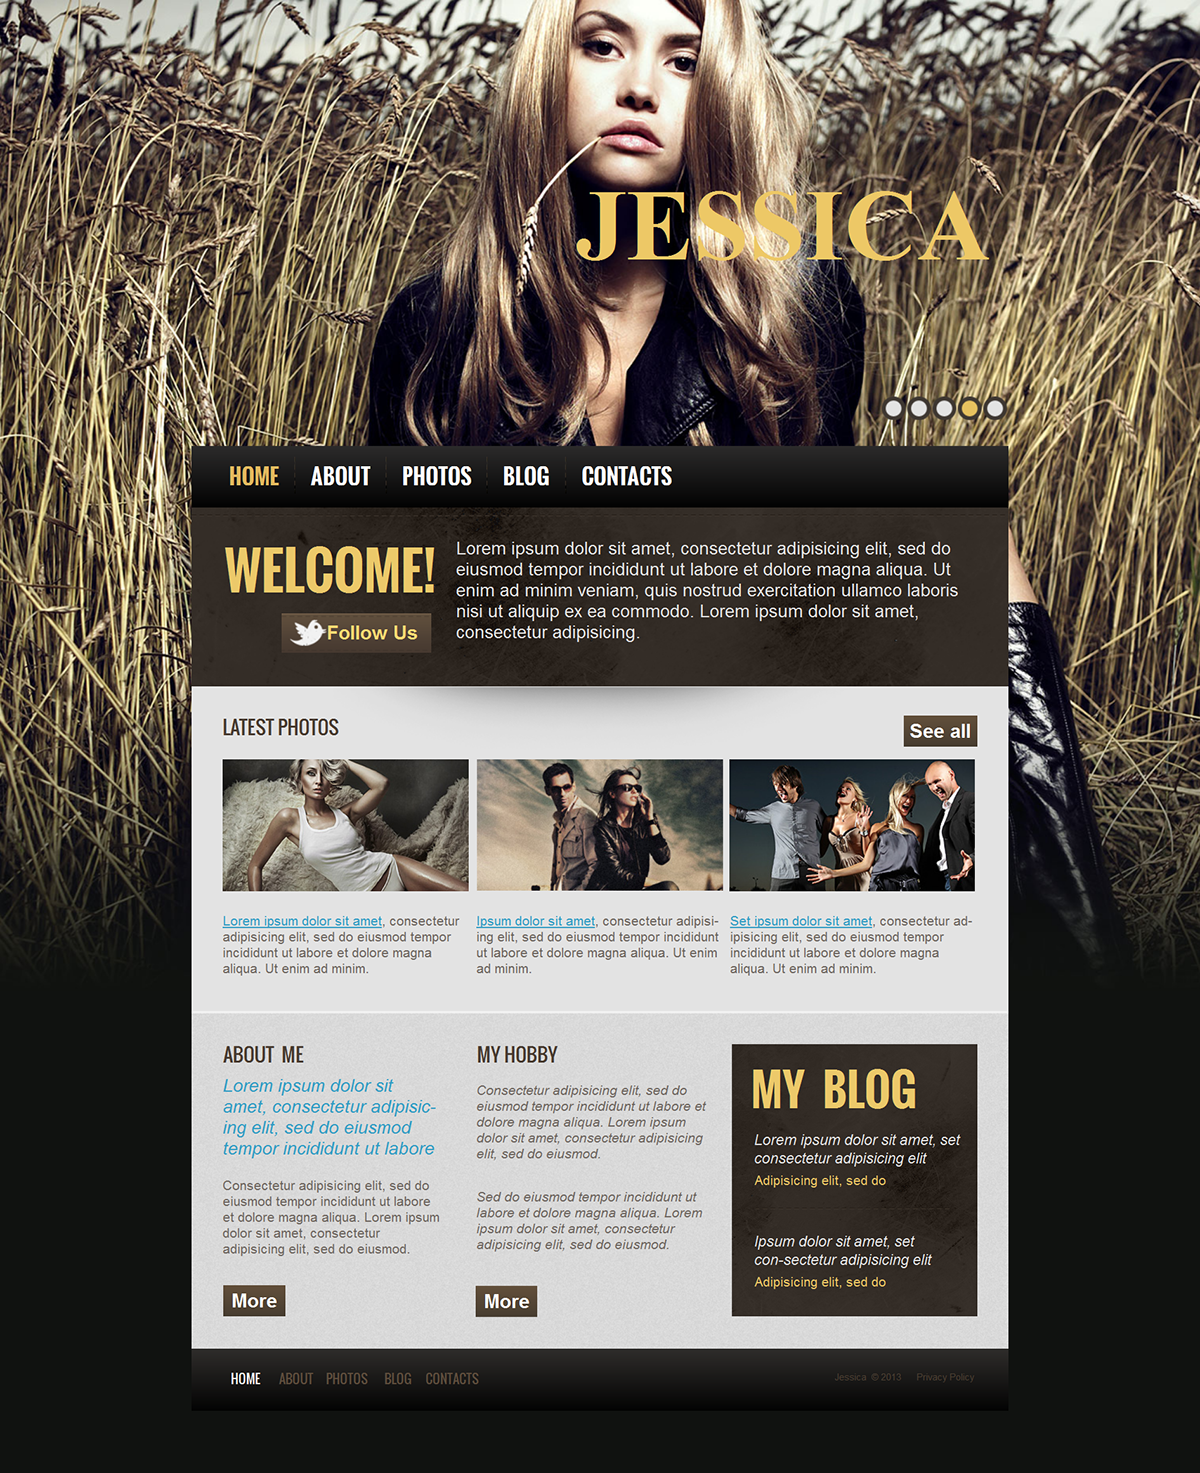 PERSONAL WEB TEMPLATES on Wacom Gallery